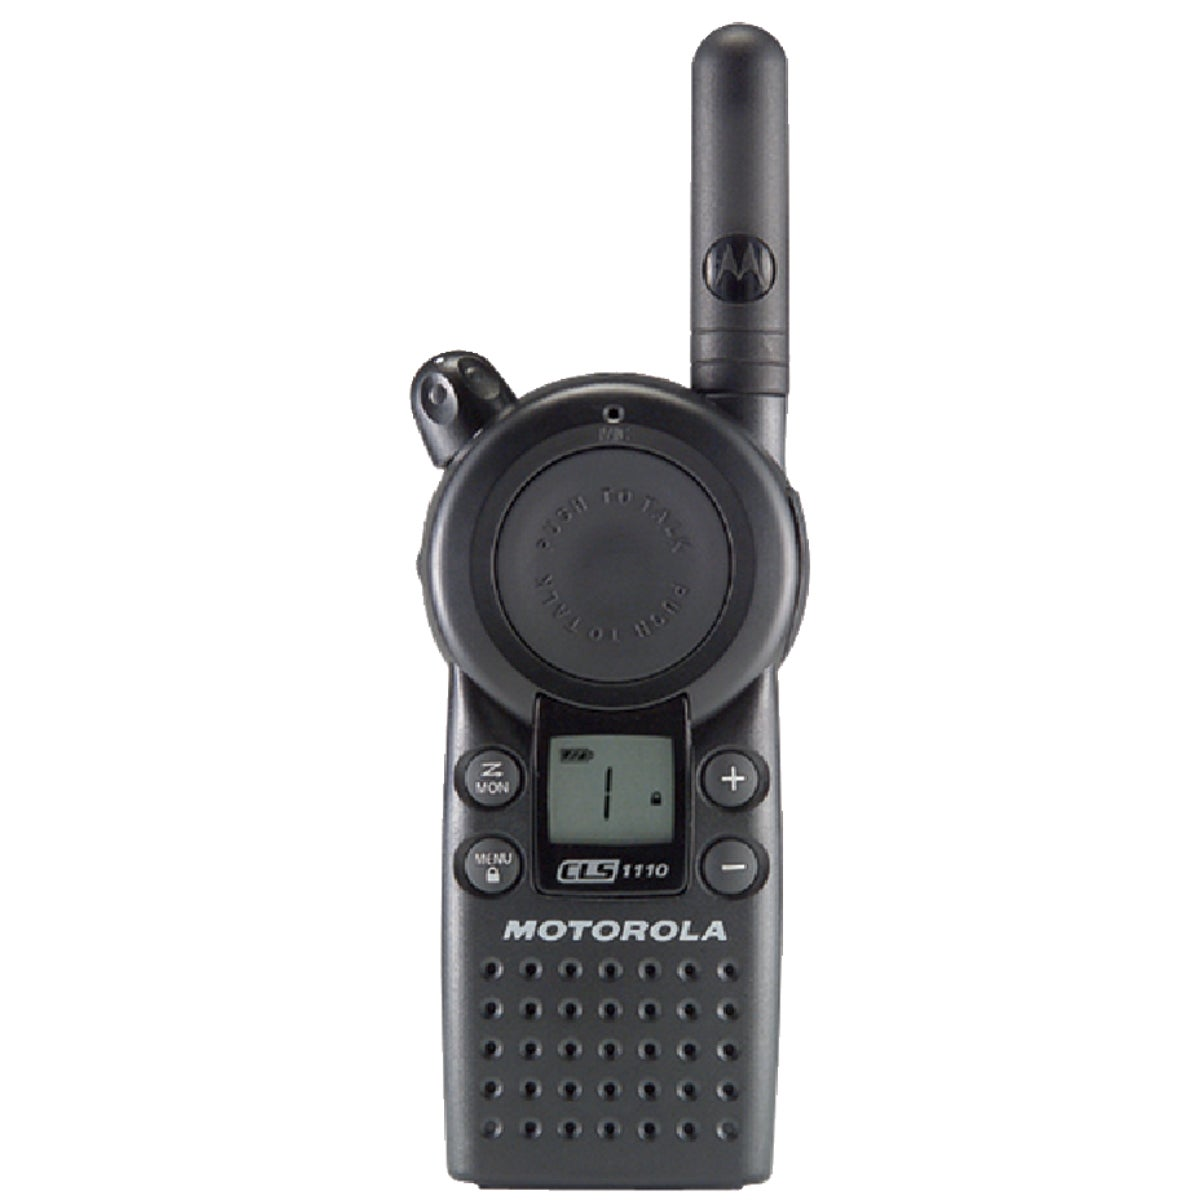 2-WAY UHF RADIO - CLS1110 by Motorola  Acs Inc